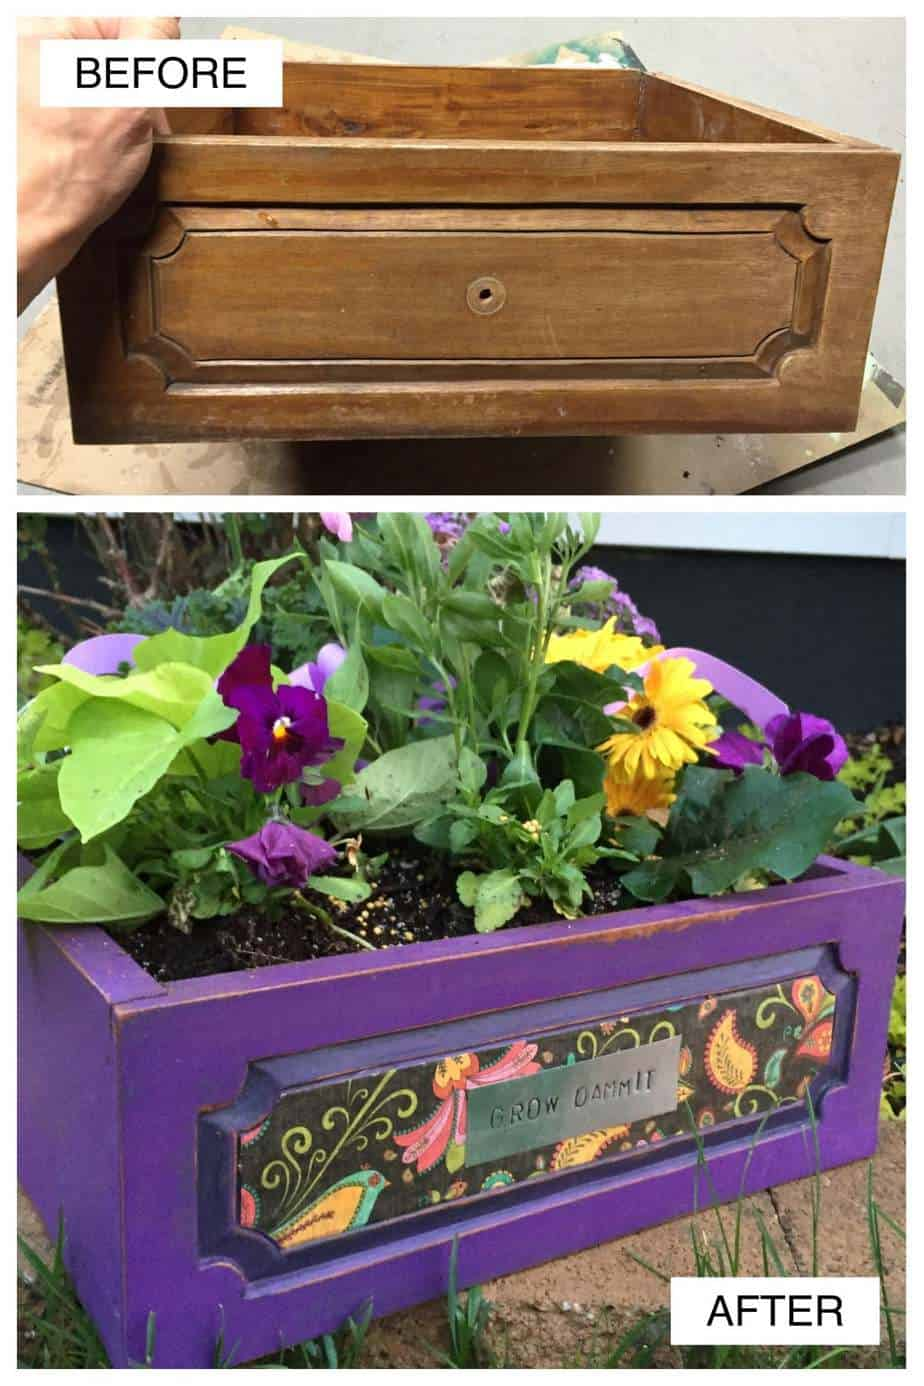 Before & After Planters from Old Drawer Cool DIY Projects